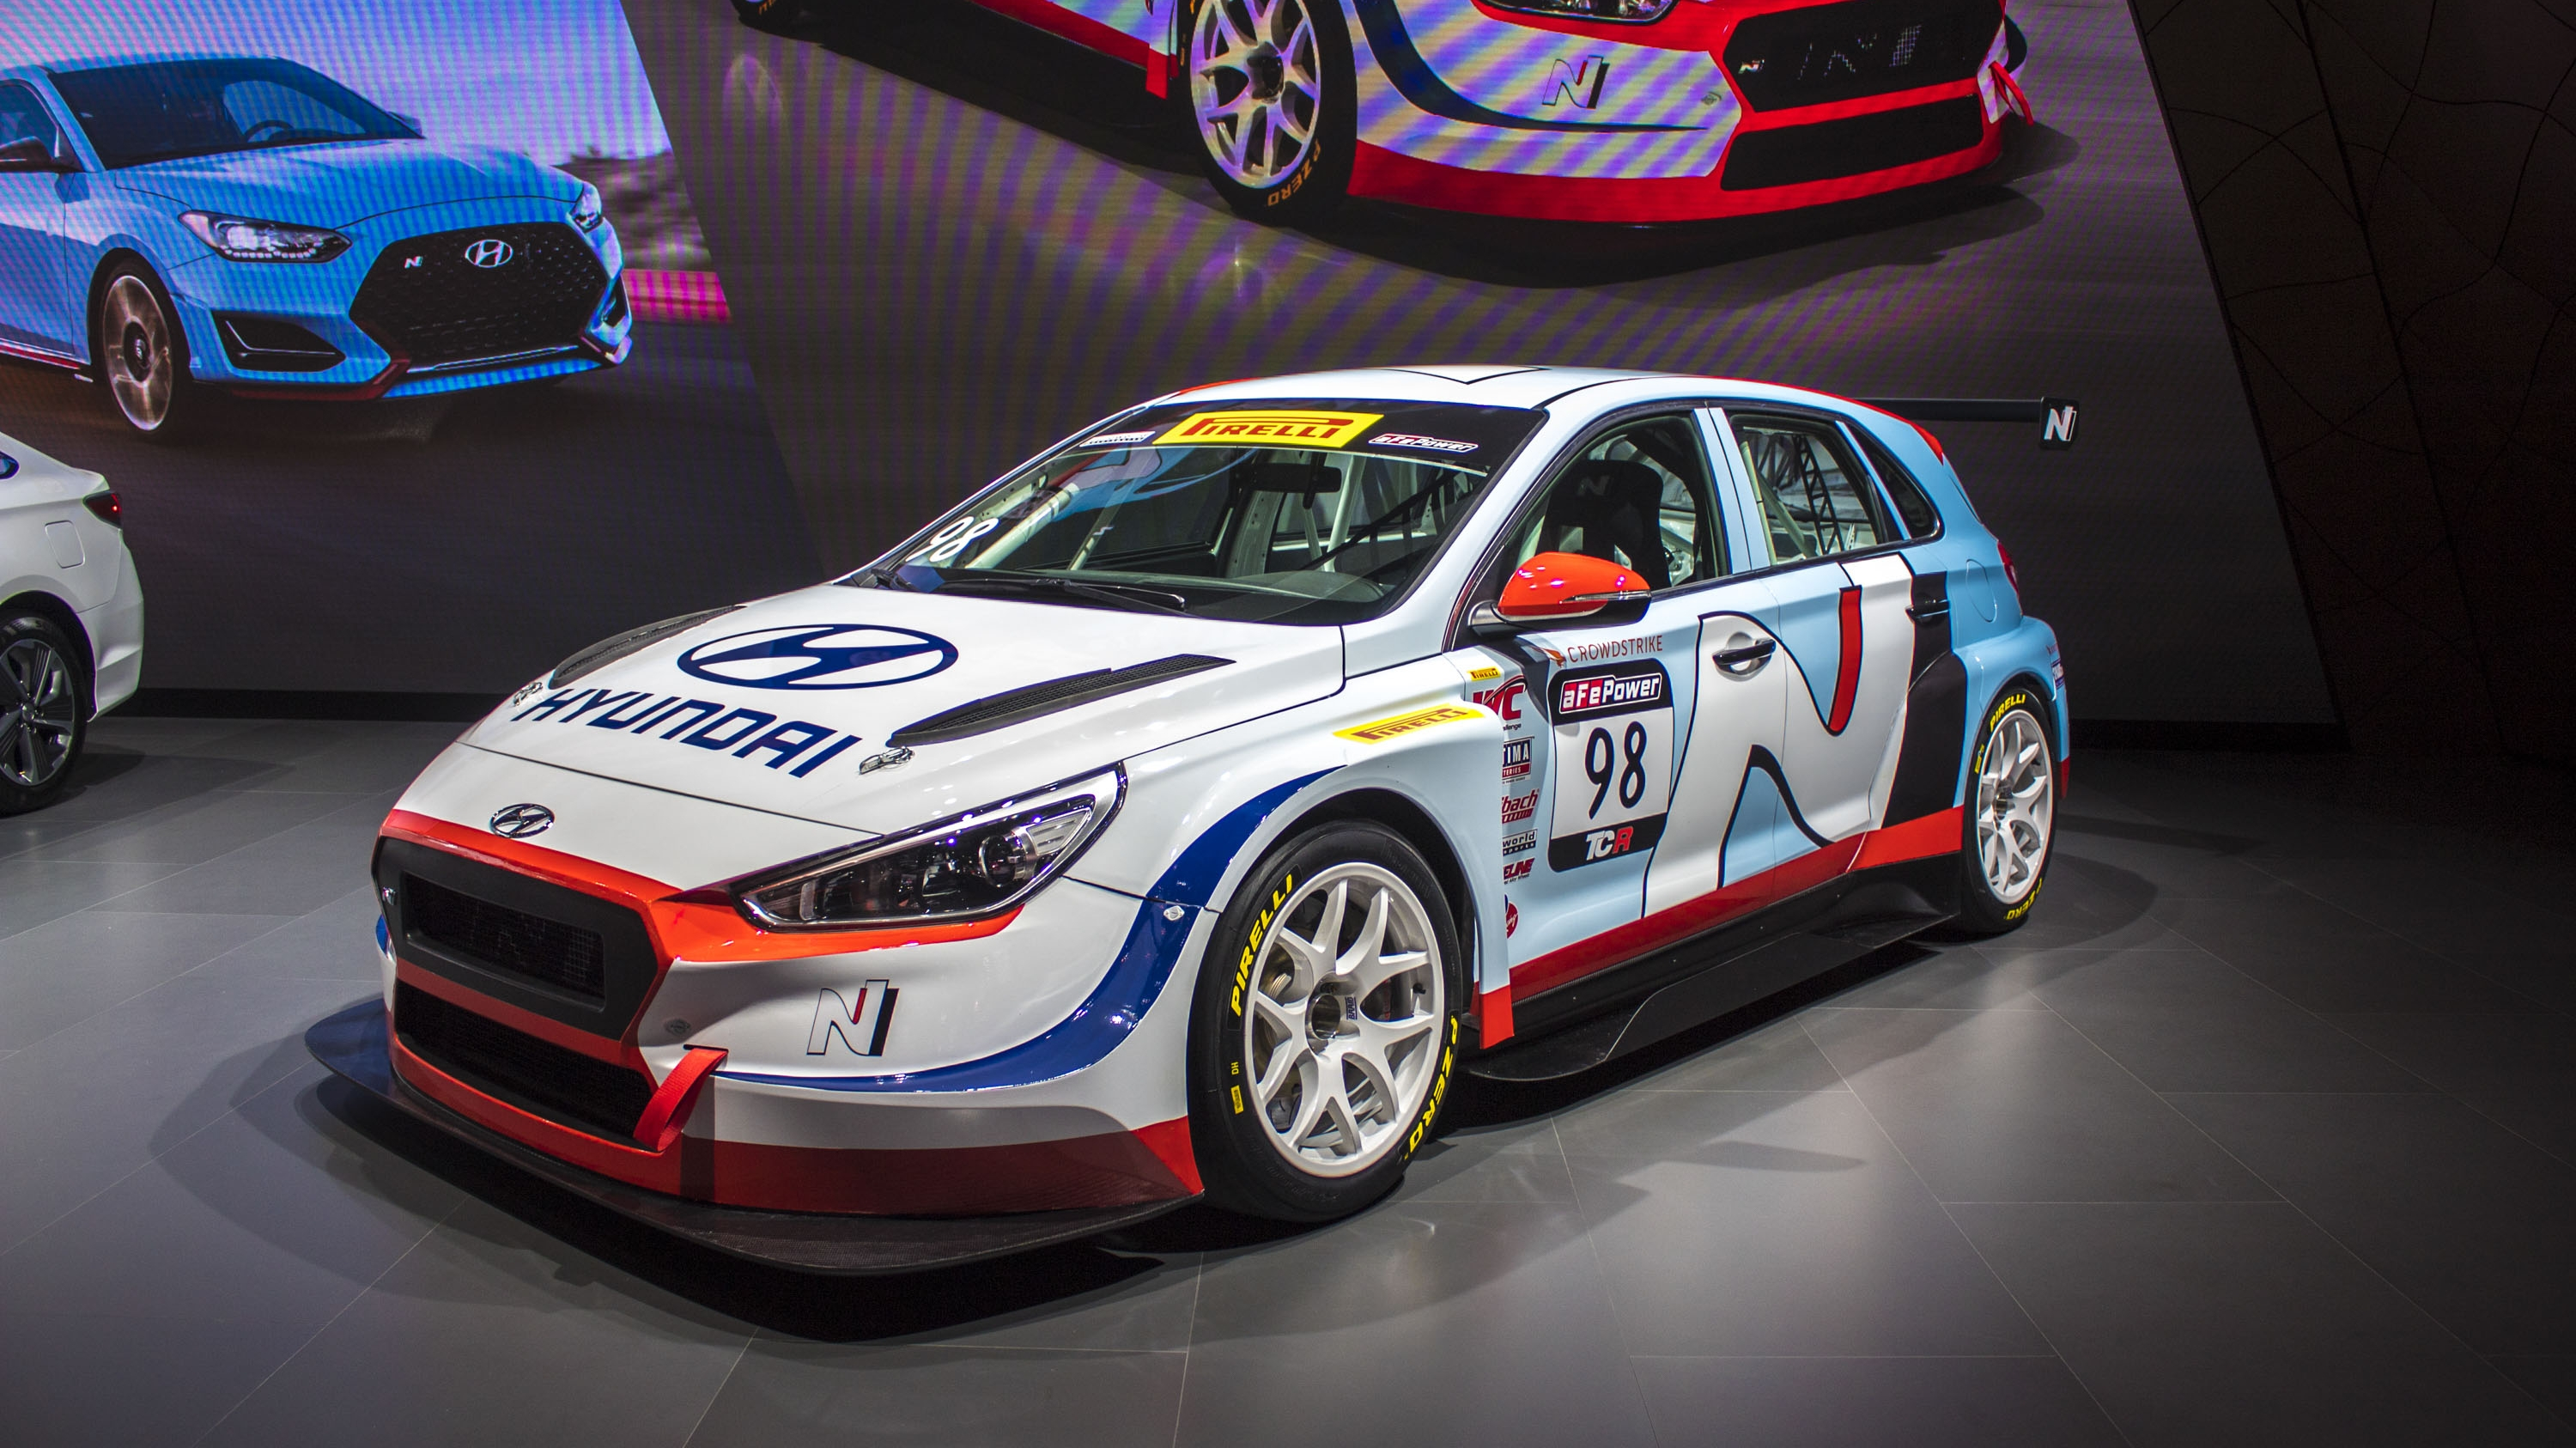 2018 Hyundai I30 N TCR Pictures, Photos, Wallpapers. | Top ...